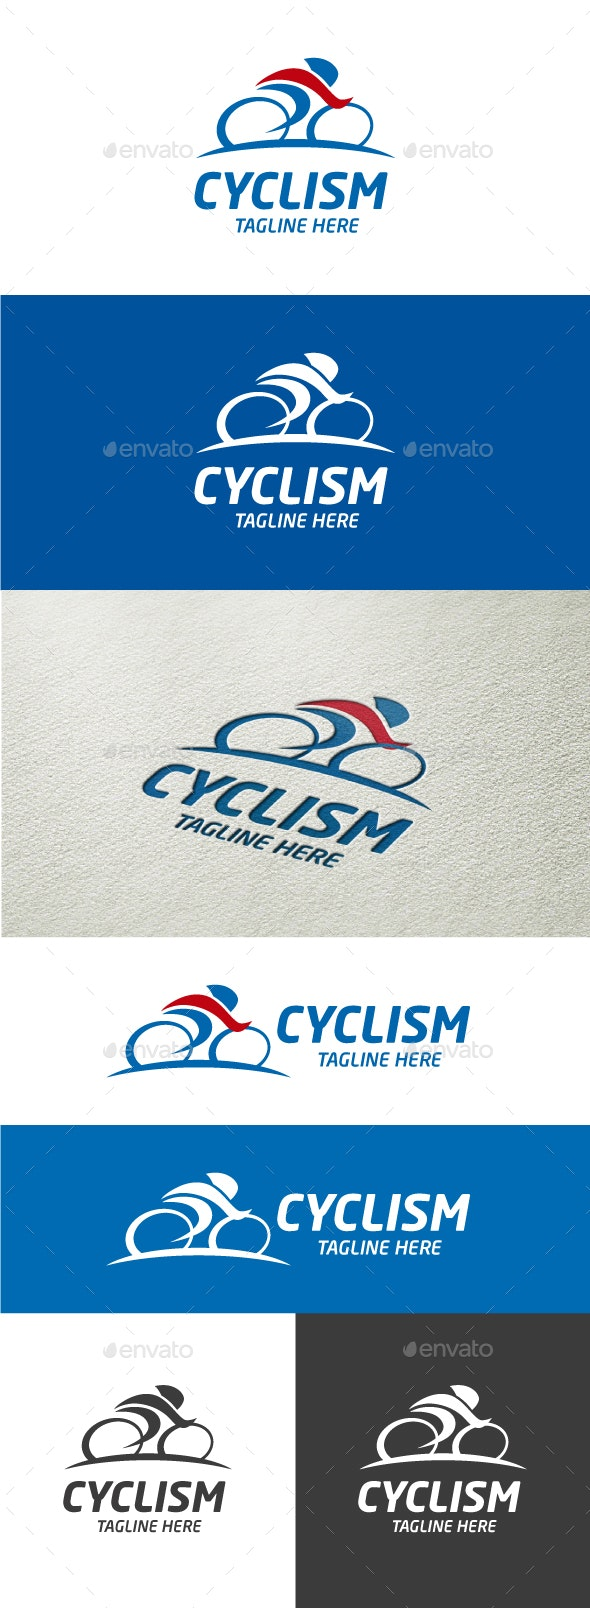 Cyclism - Sports Logo Templates